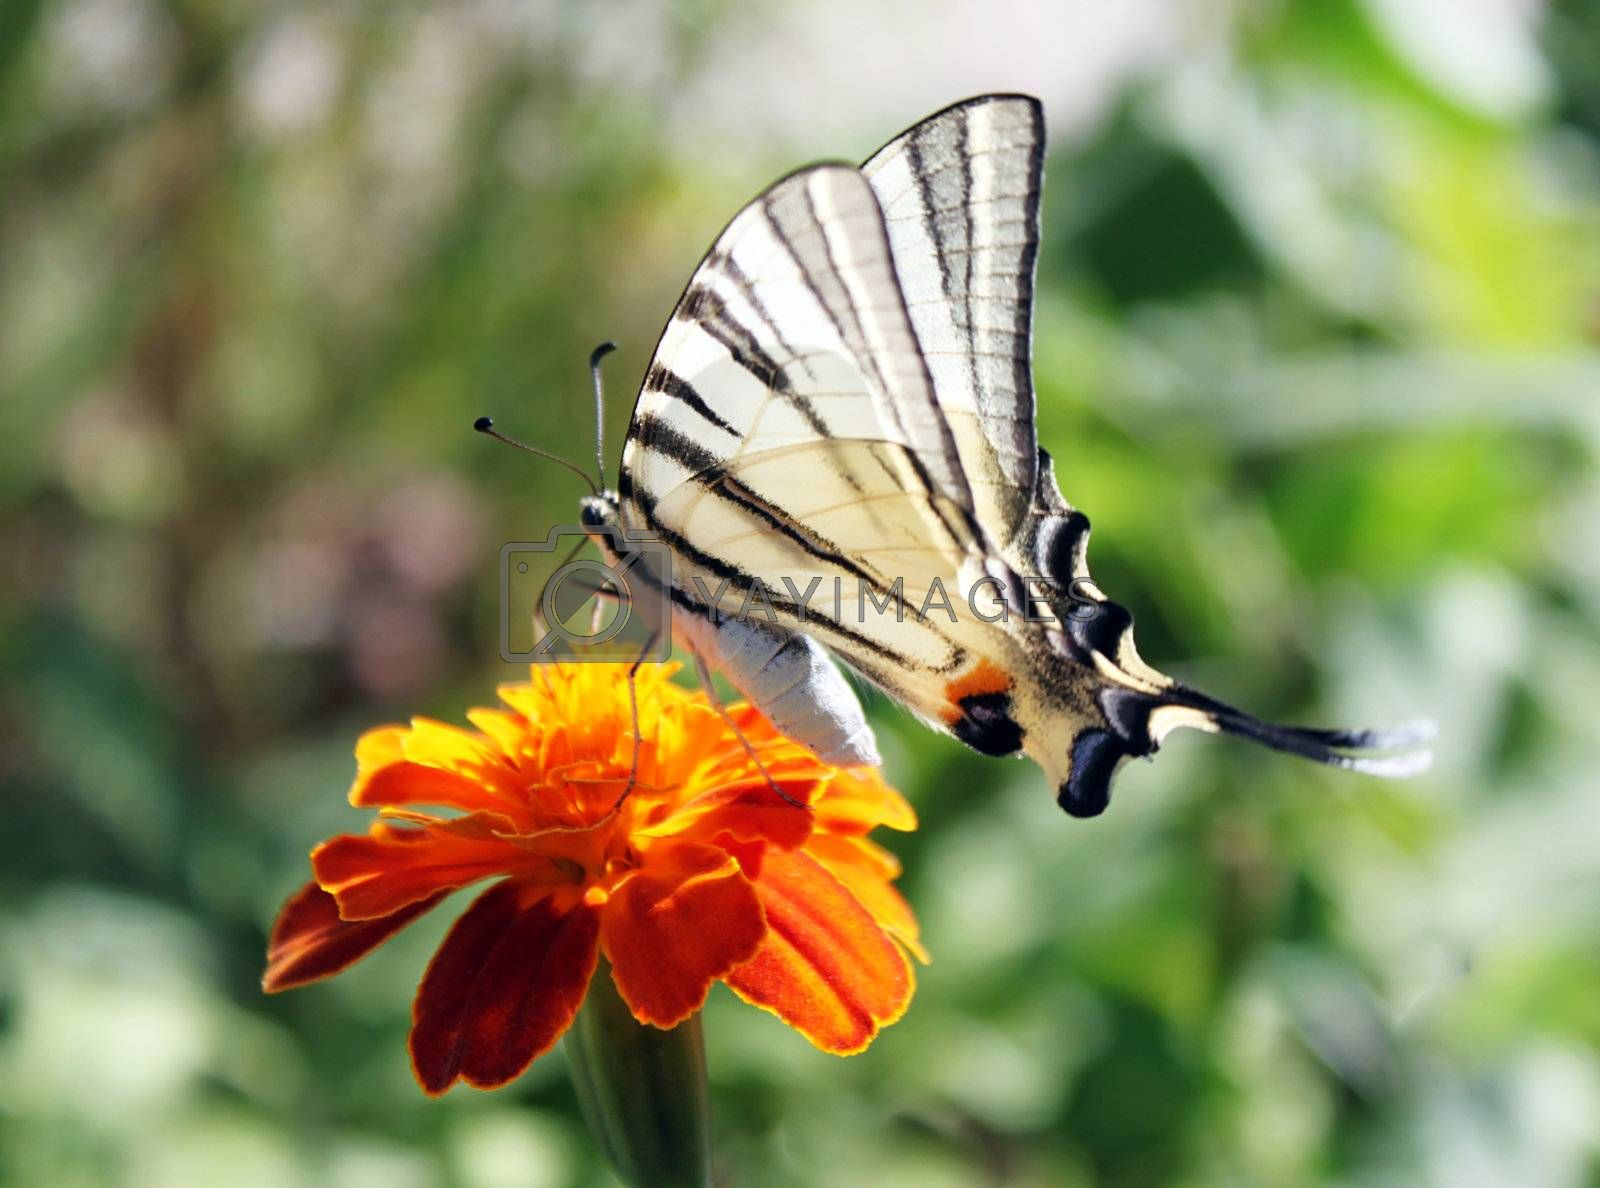 butterfly (Scarce Swallowtail) with opened wings on  flower (marigold)